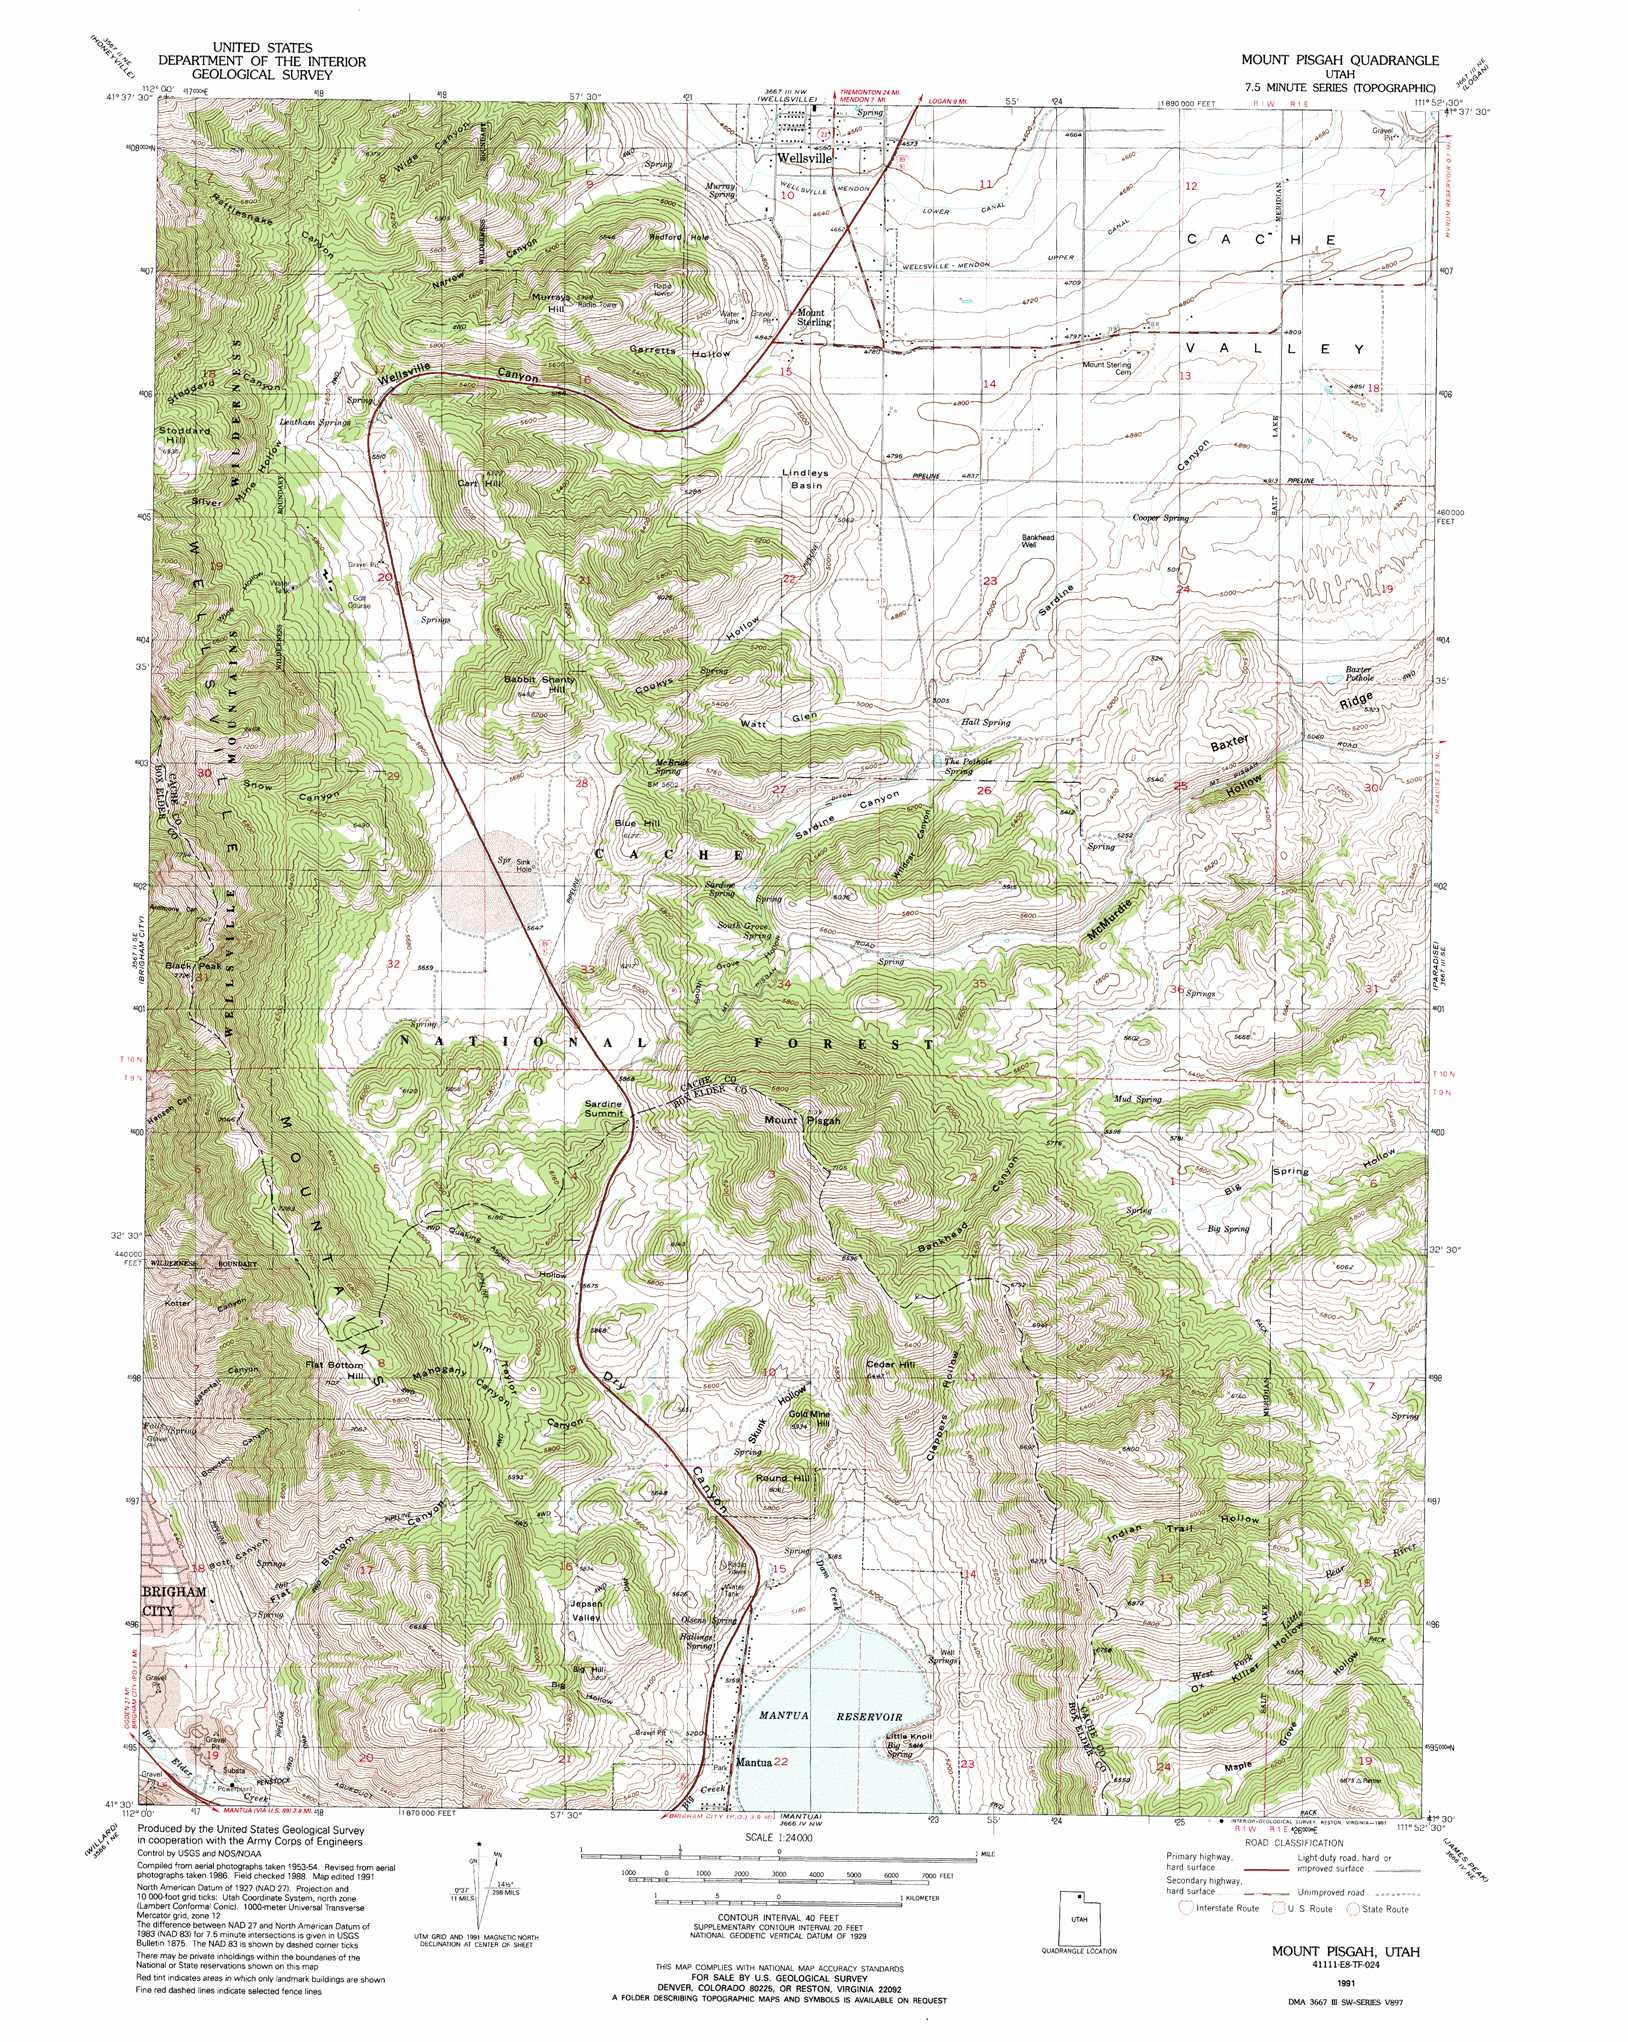 Mount Pisgah Topographic Map UT USGS Topo Quad E - Us geological survey topographic maps for sale